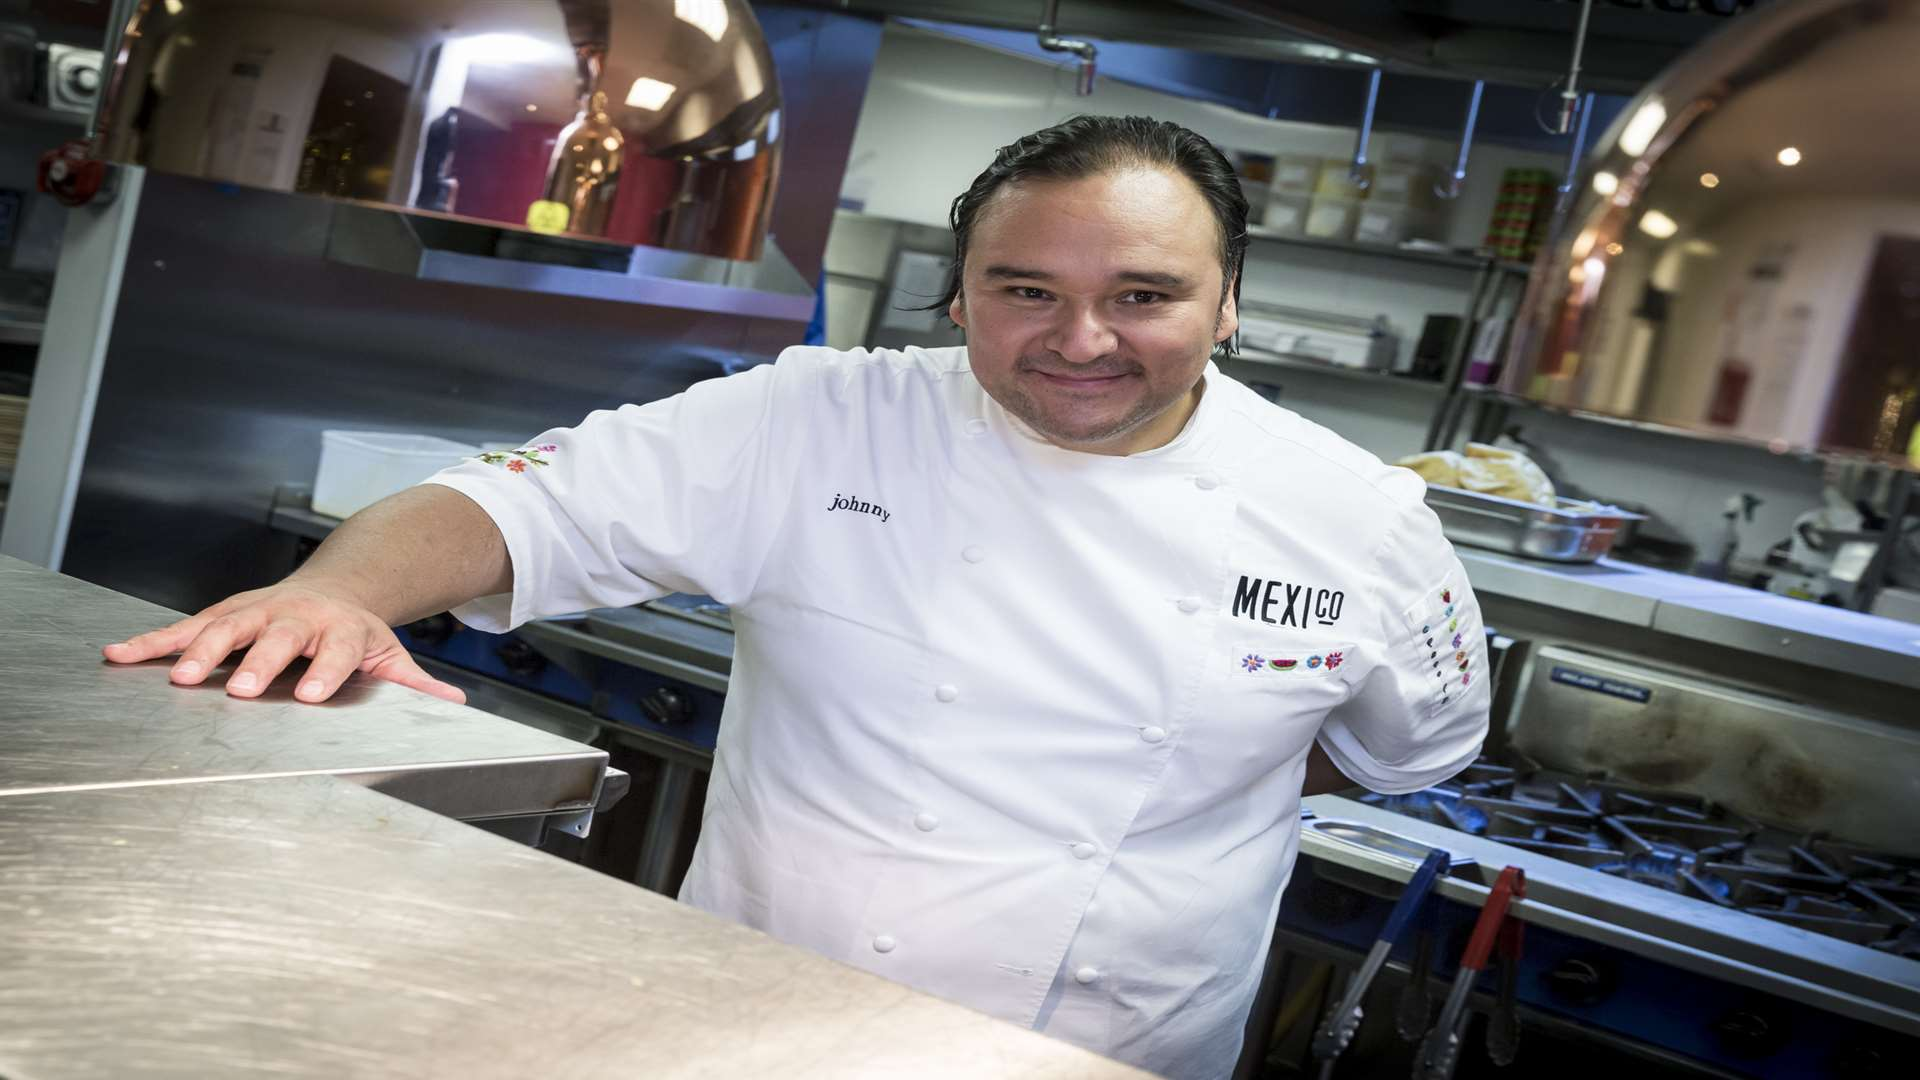 Johnny Hernandez, the US chef behind MEXico in Maidstone